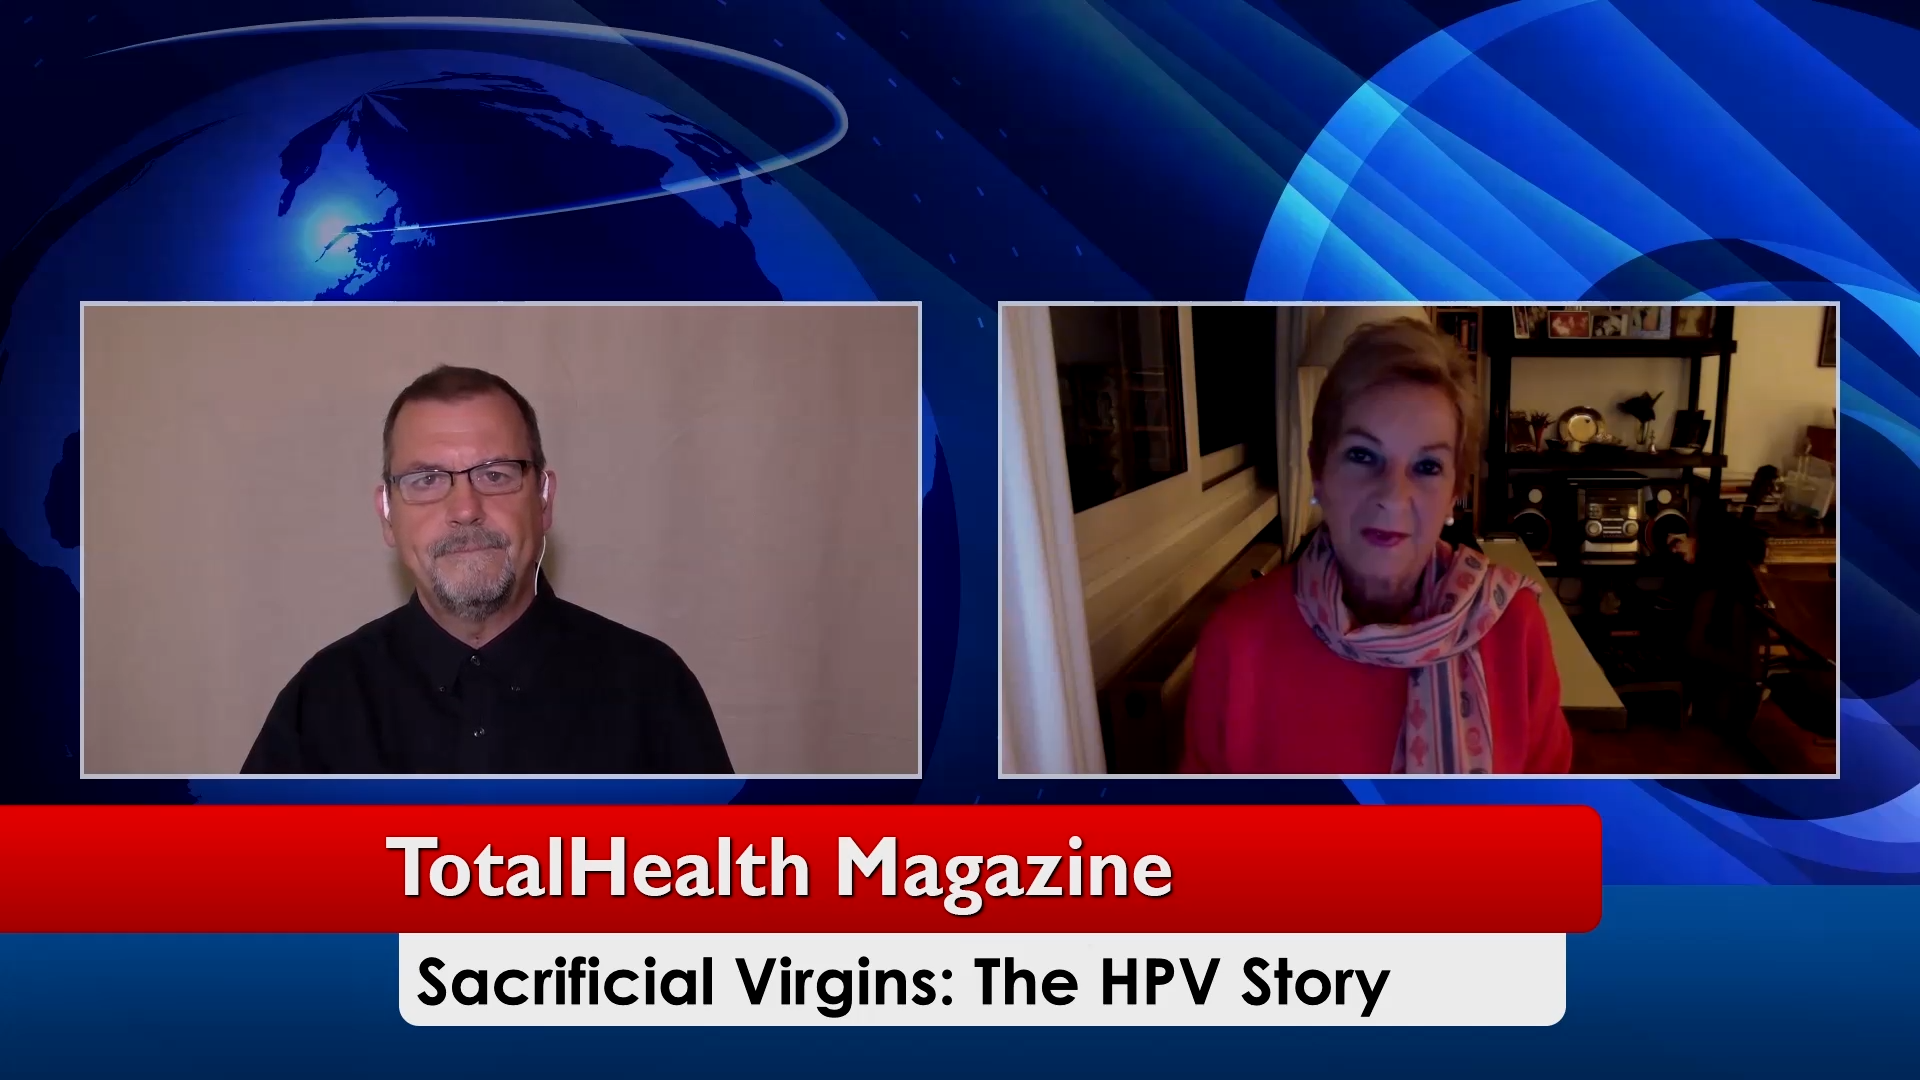 Sacrificial Virgins The HPV Vaccine Story